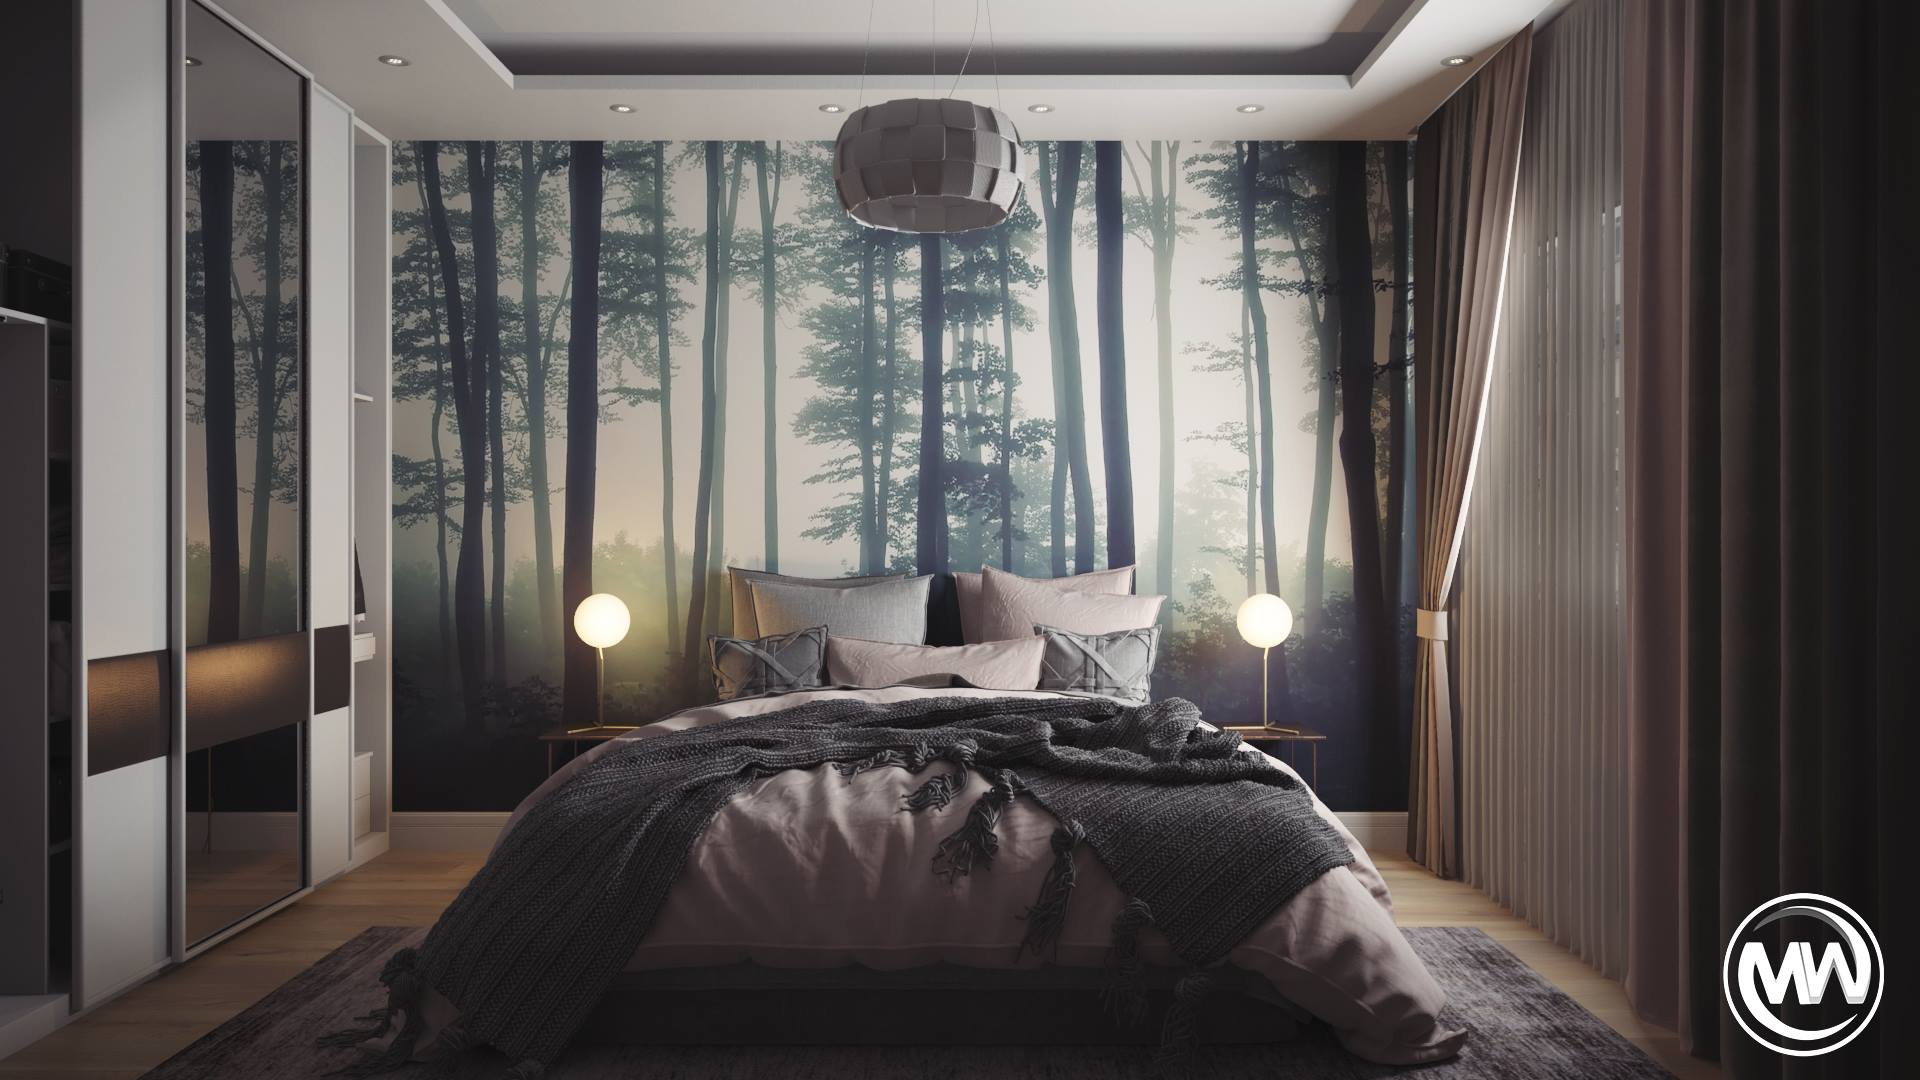 FREE 3D MODELS >> 'Full bedroom scene' by Mahmoud Wagdi | 3D Empire